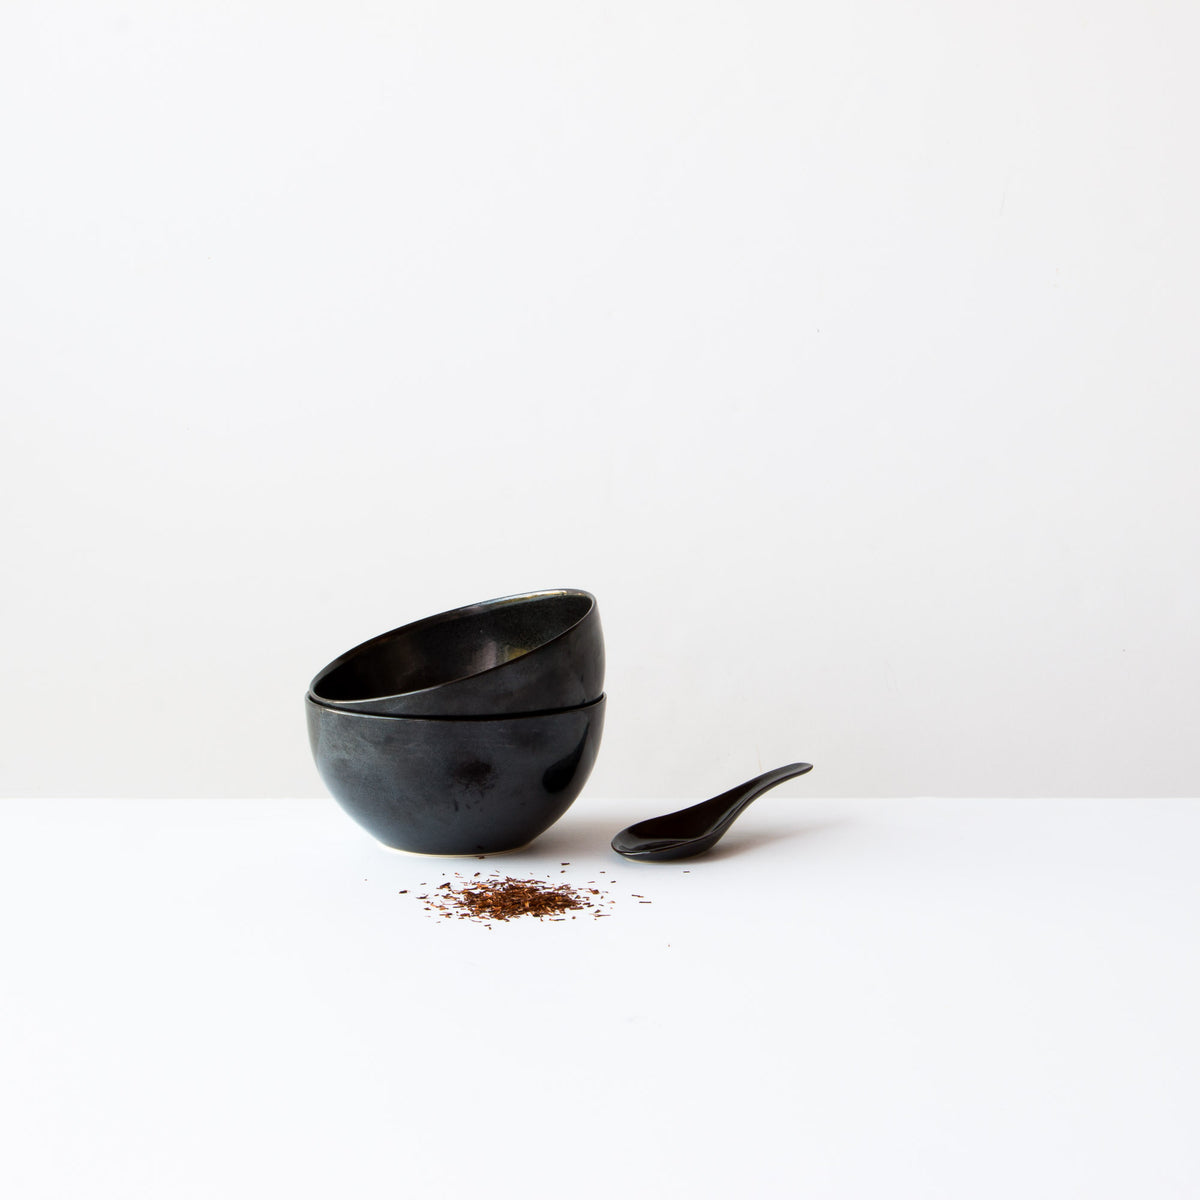 Handmade Porcelain Rice Bowl With Spoon - Black Porcelain - Sold by Chic & Basta